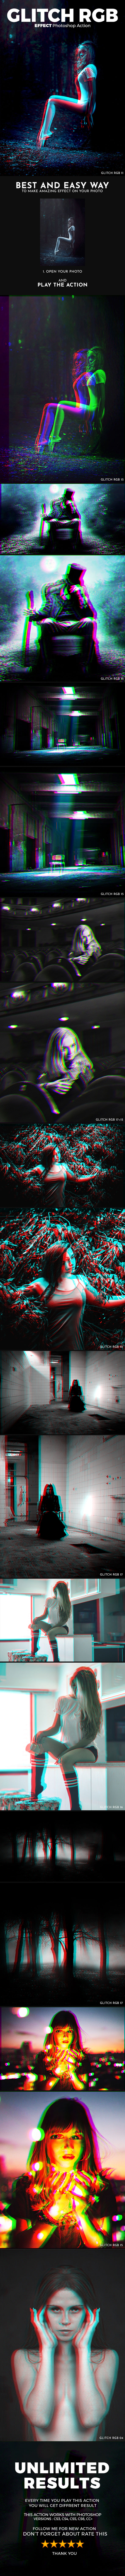 GraphicRiver Glitch RGB Effect Photoshop Action 20873153